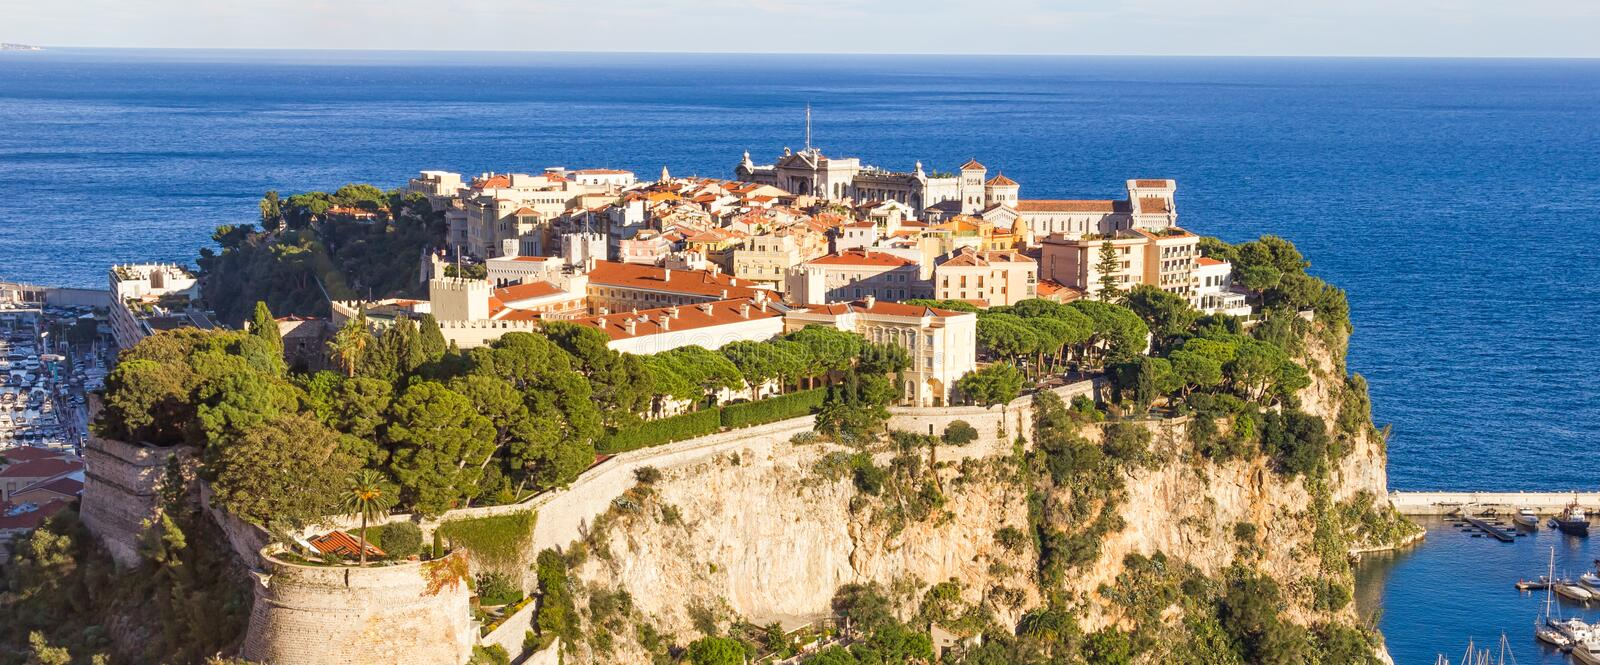 Aerial view of the Princes Palace, Monaco. Aerial view of the Princes Palace in Monaco stock image